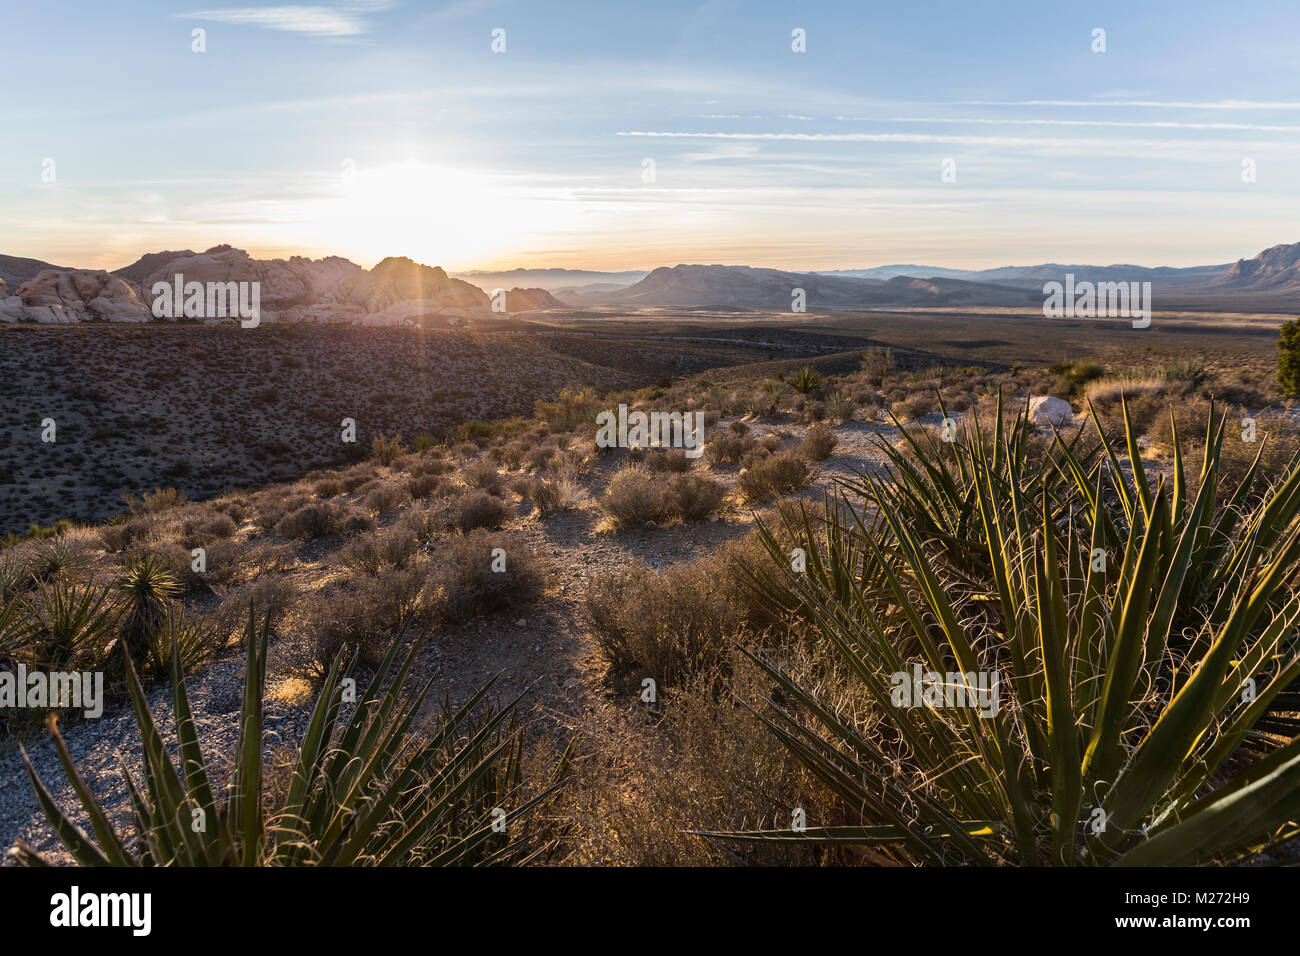 Dawn view from scenic loop overlook at Red Rock Canyon National Conservation Area near Las Vegas Nevada. - Stock Image